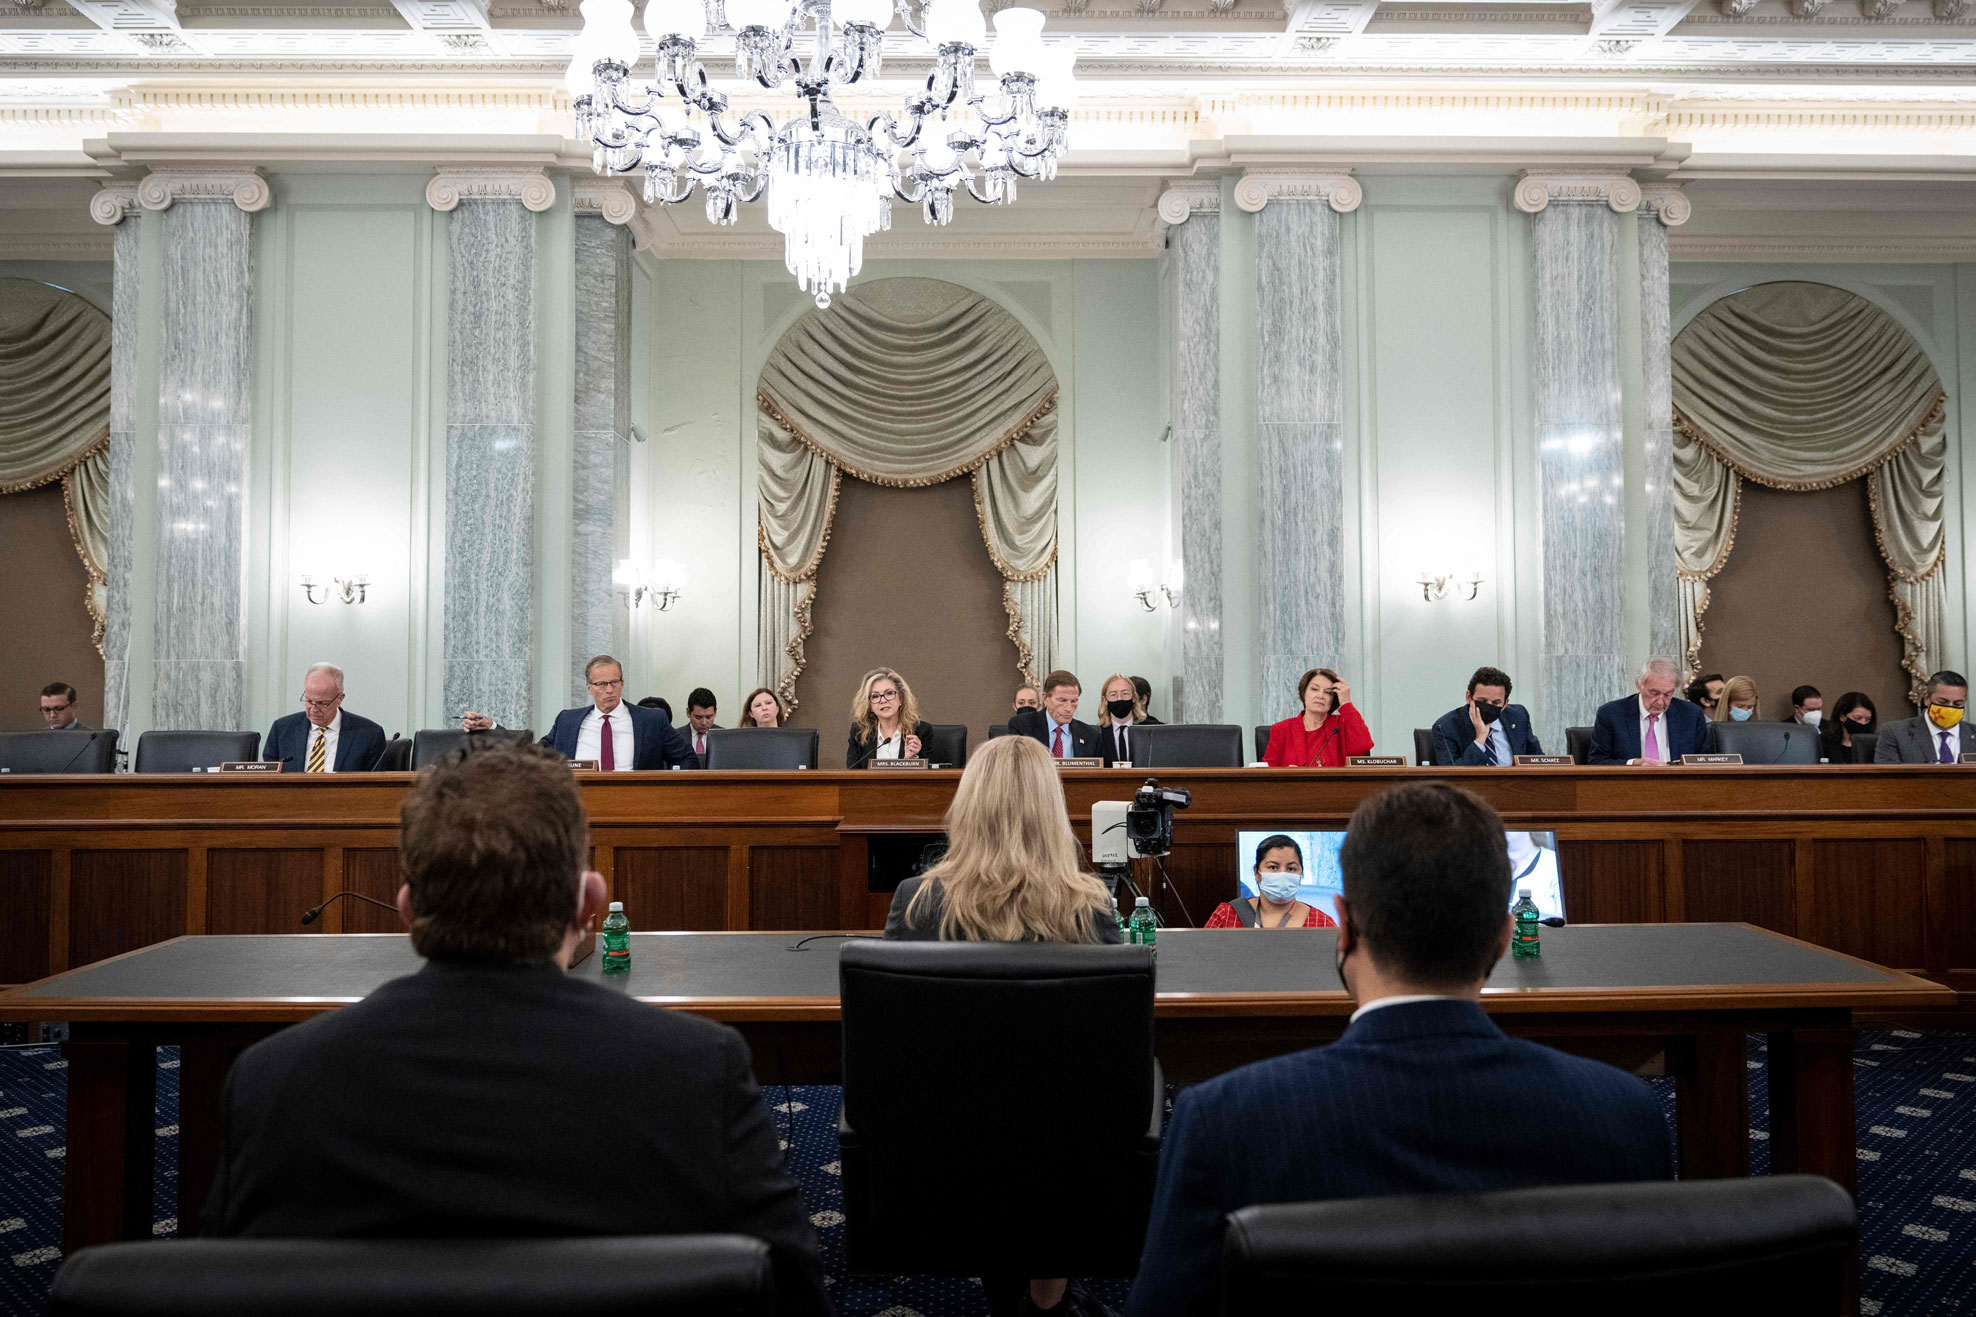 Committee Senators listen as former Facebook employee and whistleblower Frances Haugen (C) testifies before a Senate Committee on Commerce, Science, and Transportation hearing on Capitol Hill, October 5, 2021, in Washington, DC.